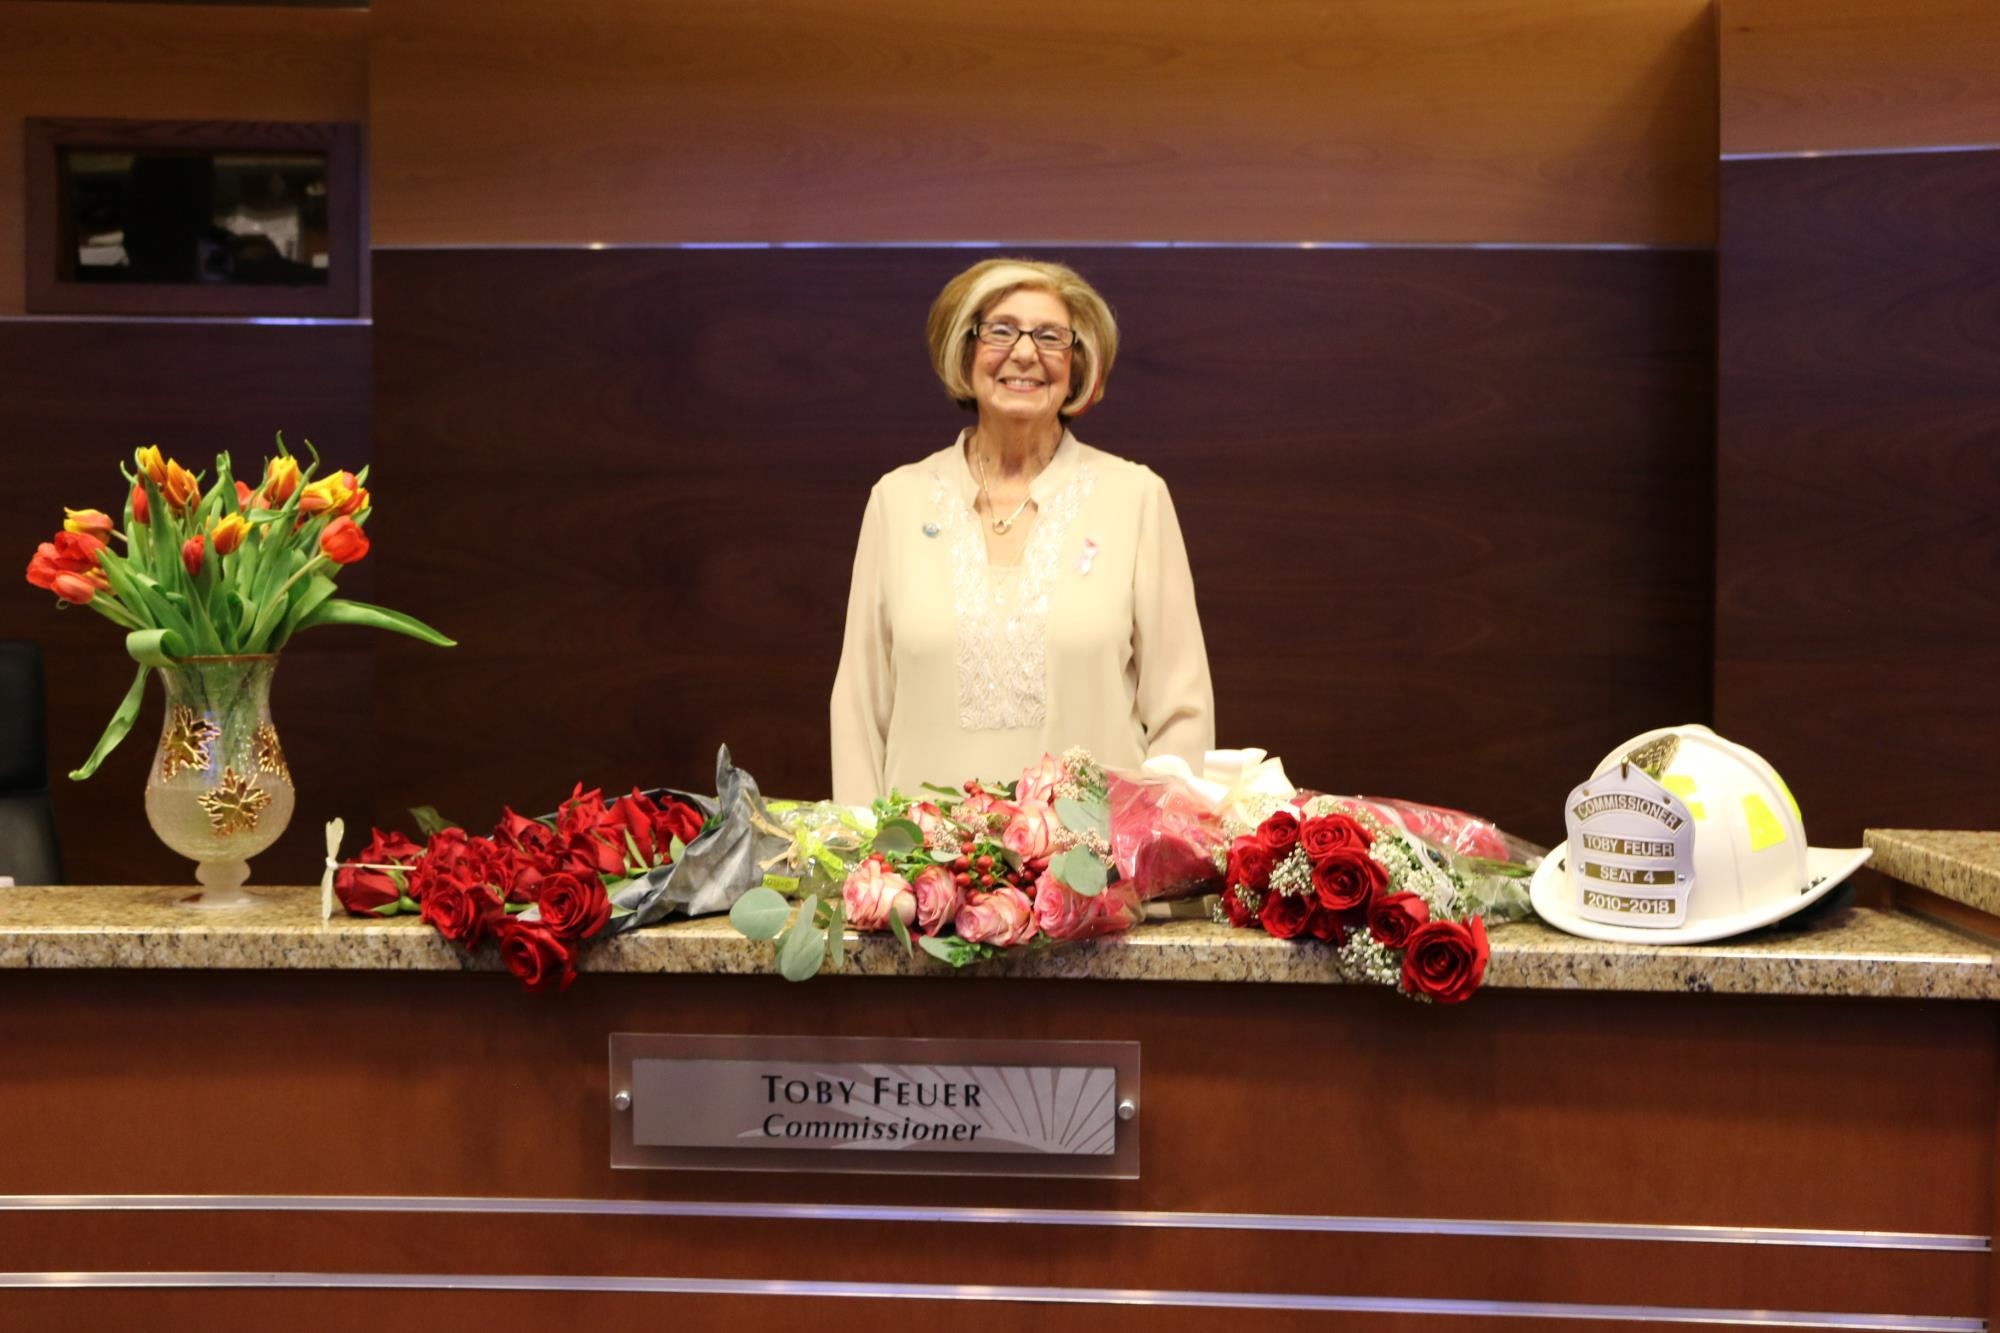 Commissioner Toby Feuer standing in front of her flowers at dais